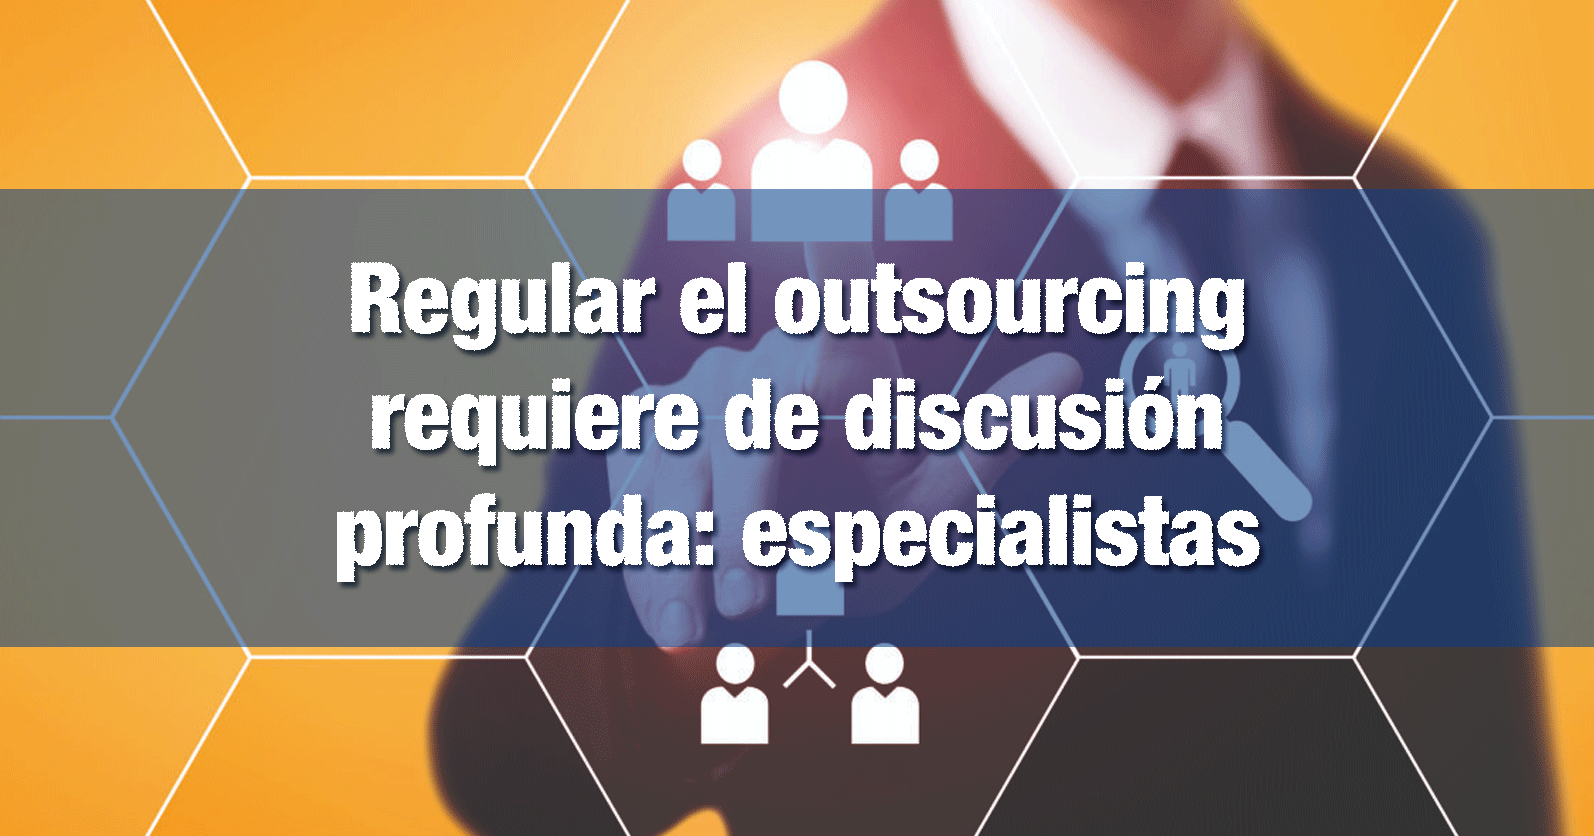 Regular el outsourcing requiere de discusión profunda: especialistas